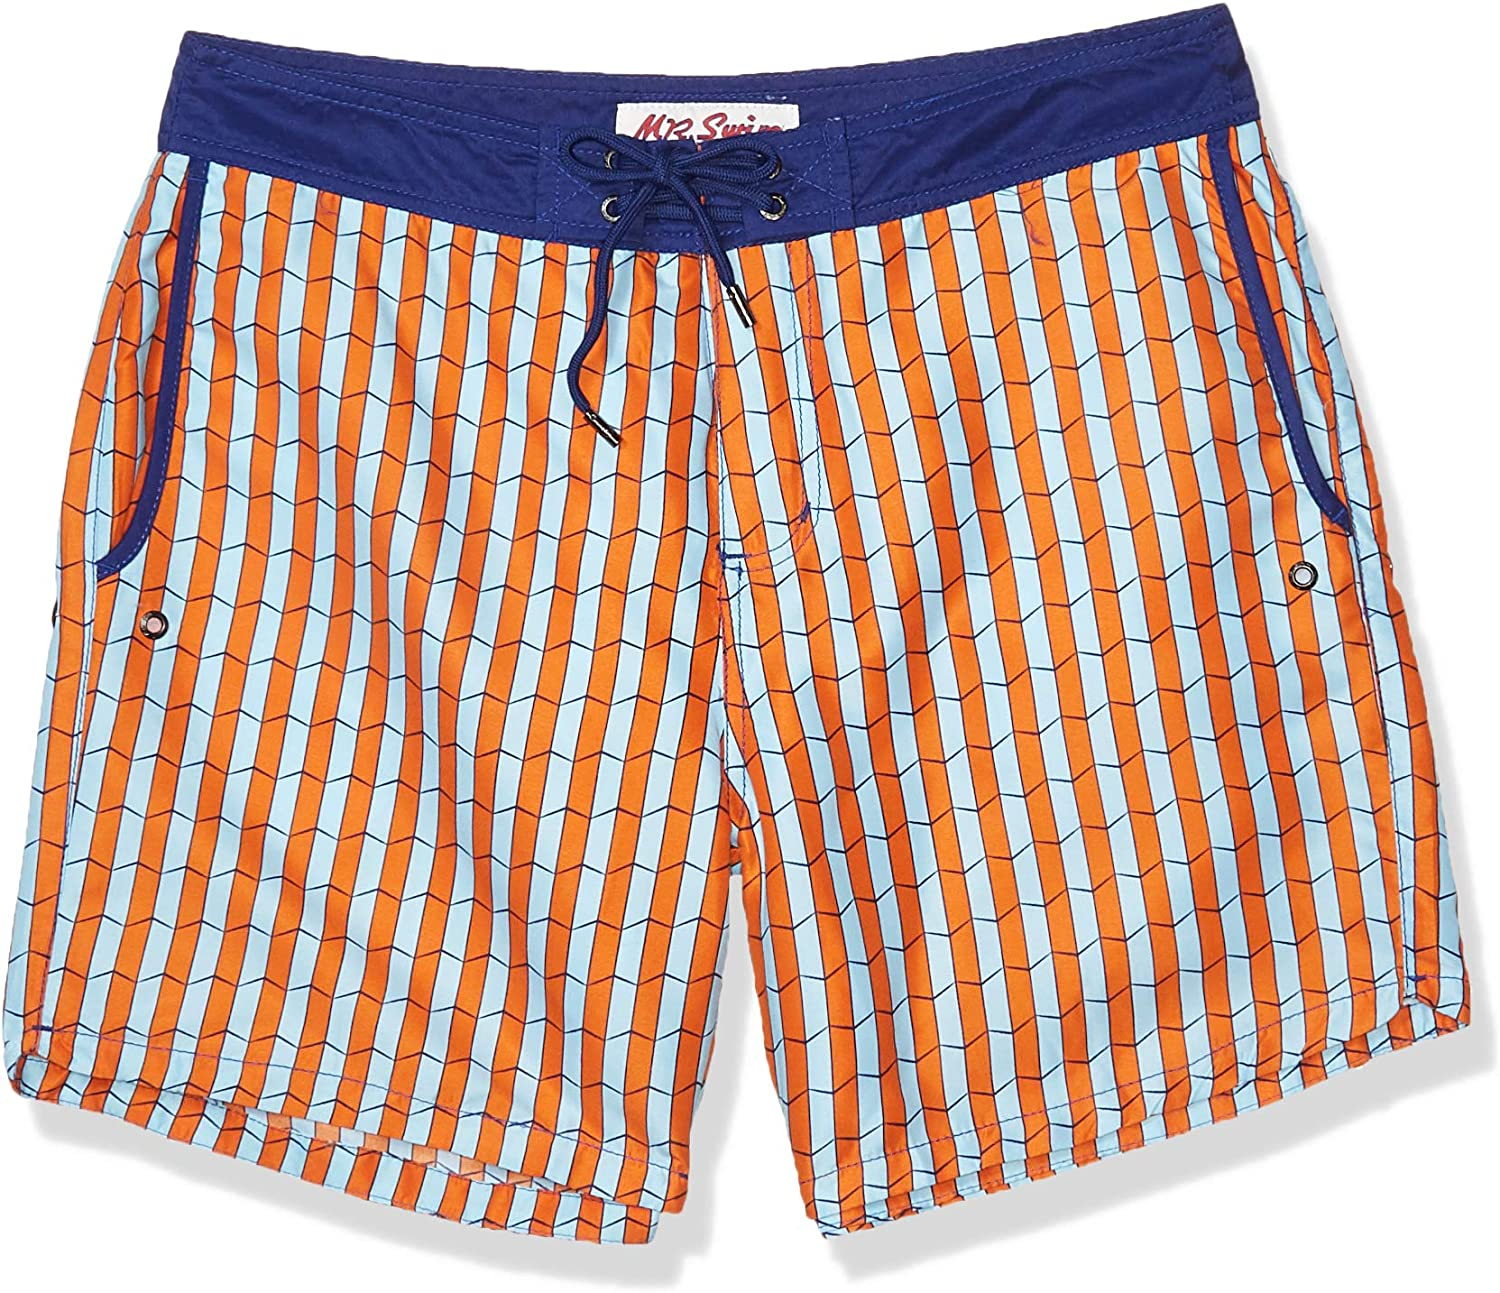 Mr. Swim Men's Shifted Chuck Swim Trunk, Orange, 34